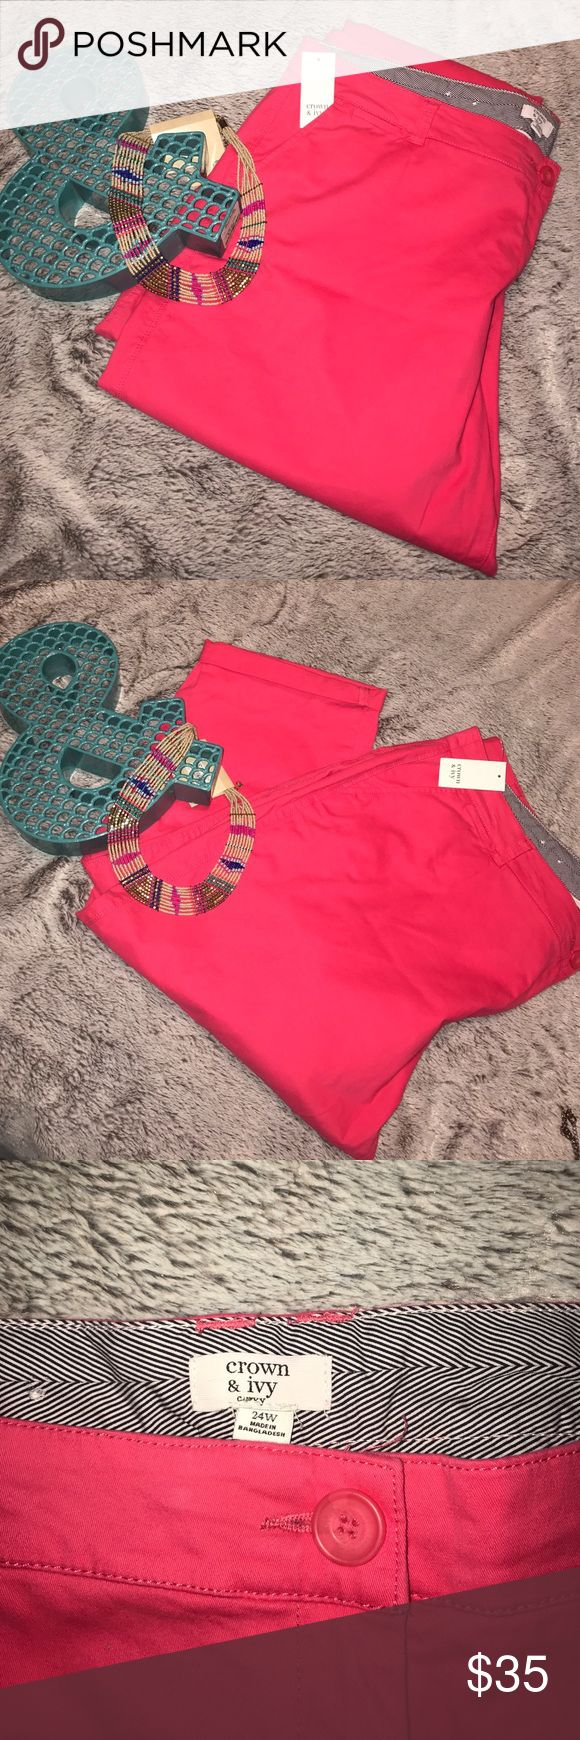 Crown & Ivy Pink Capris NWT. Gorgeous and vibrant hot pink. These are so incredibly soft! crown & ivy Pants Capris